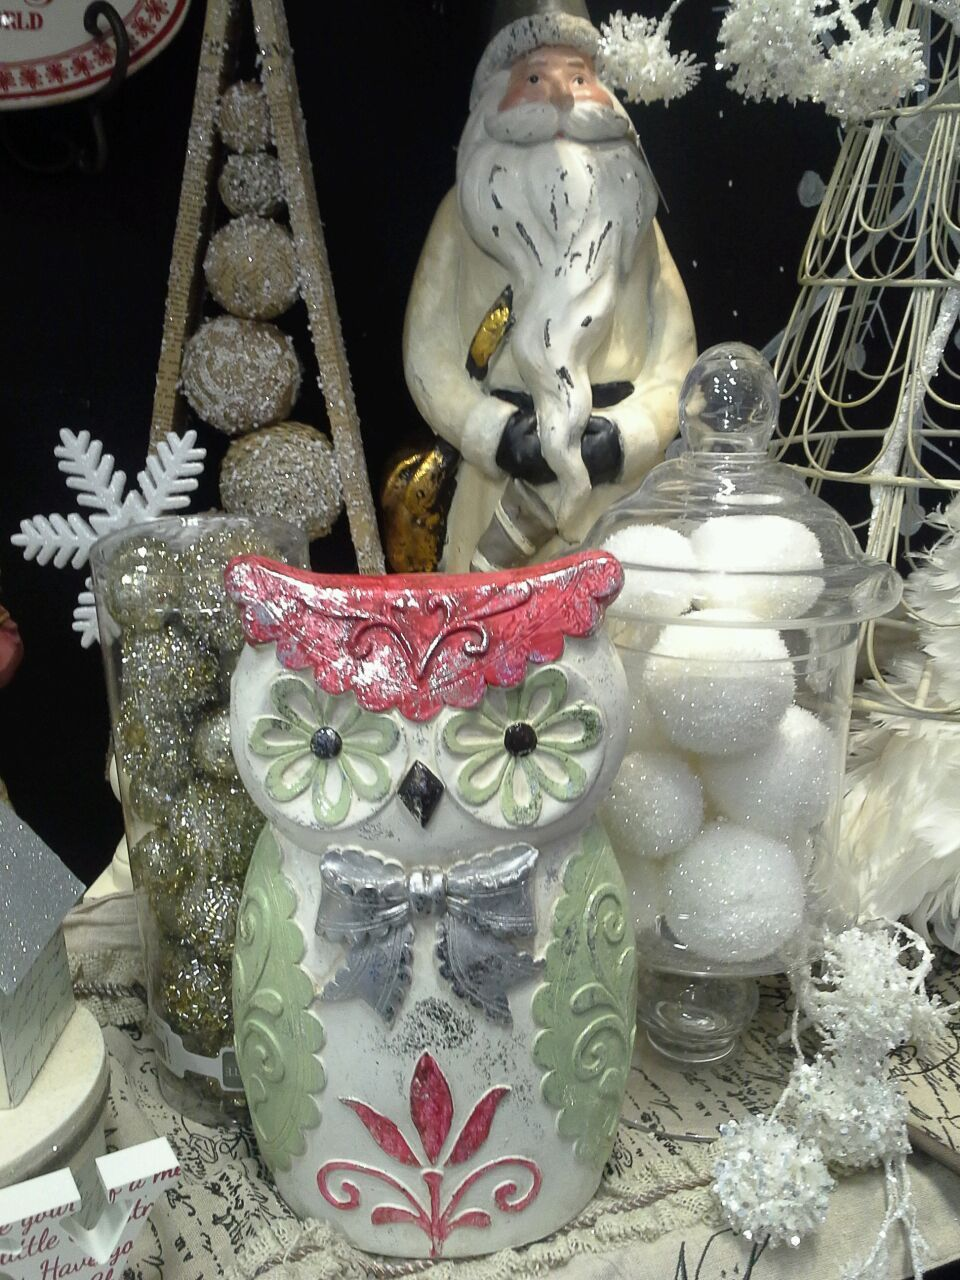 Christmas Owl, Snow Balls in Apothecary Jars Rod works - A Natural Winter Wonderland - Rodworks